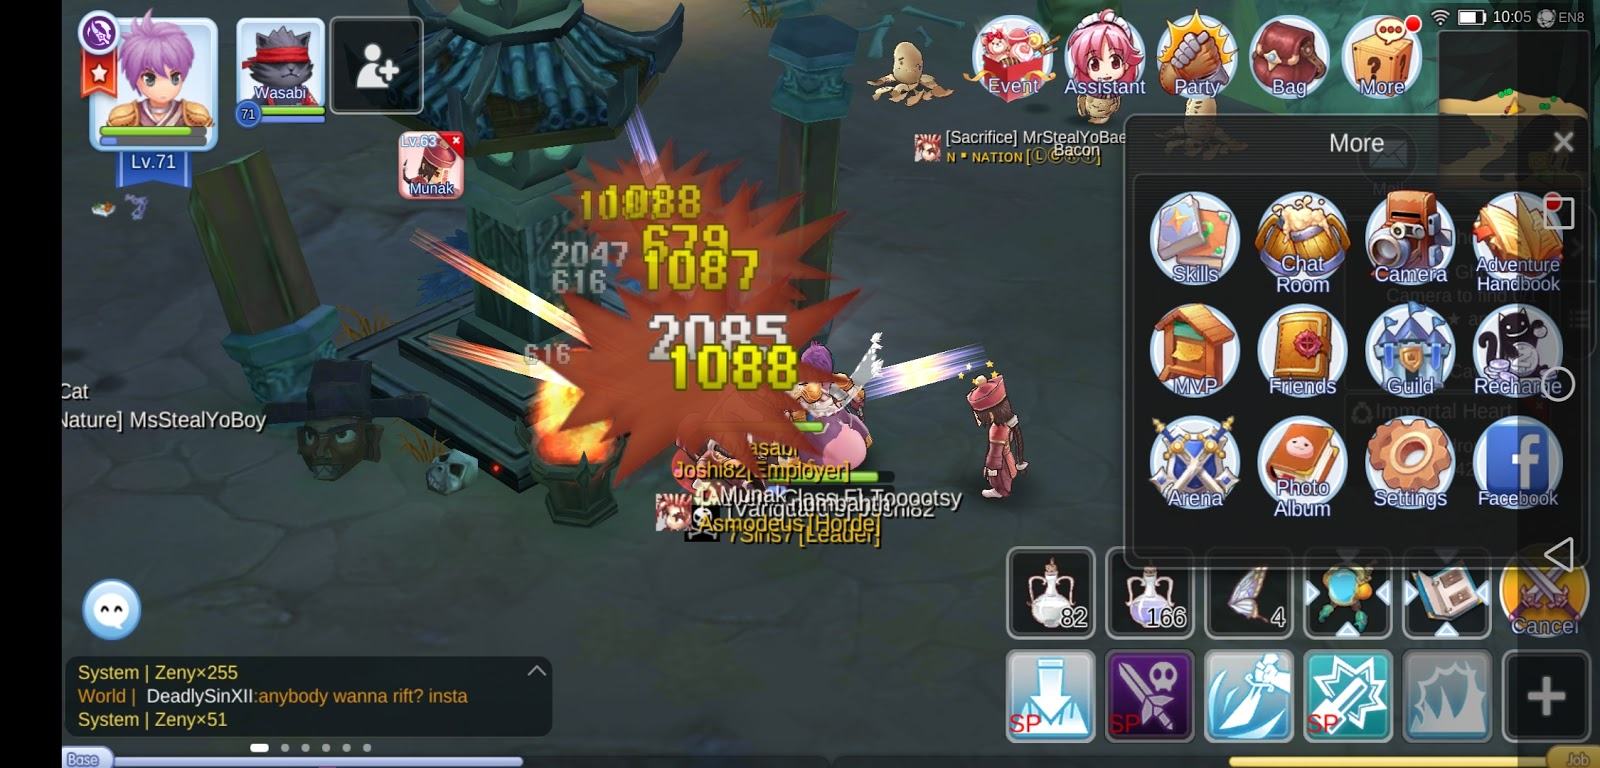 Android Ragnarok Mobile Eternal Love Interface And Game Function